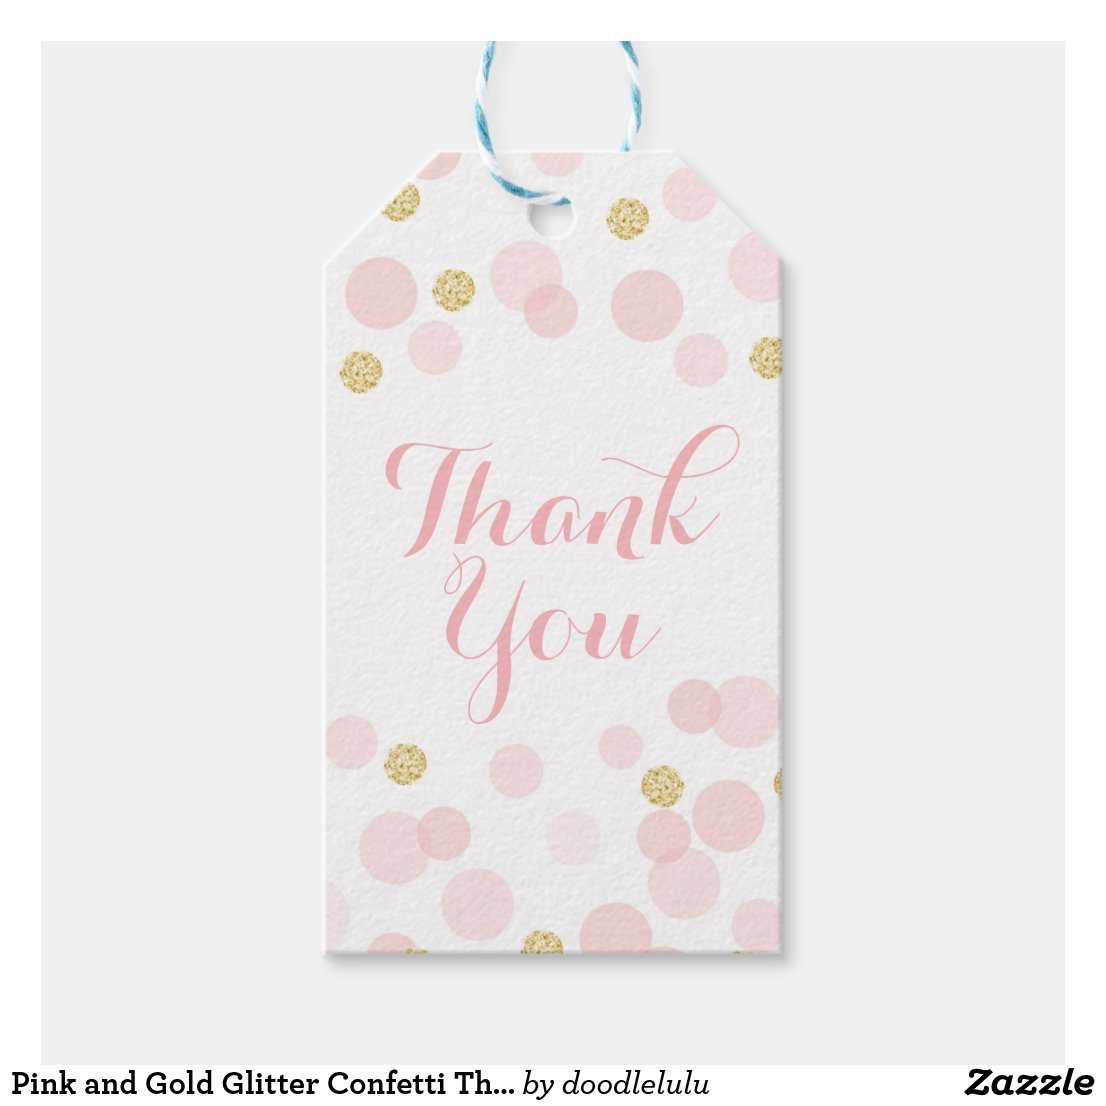 Pink and Gold Glitter Confetti Thank You Gift Tags